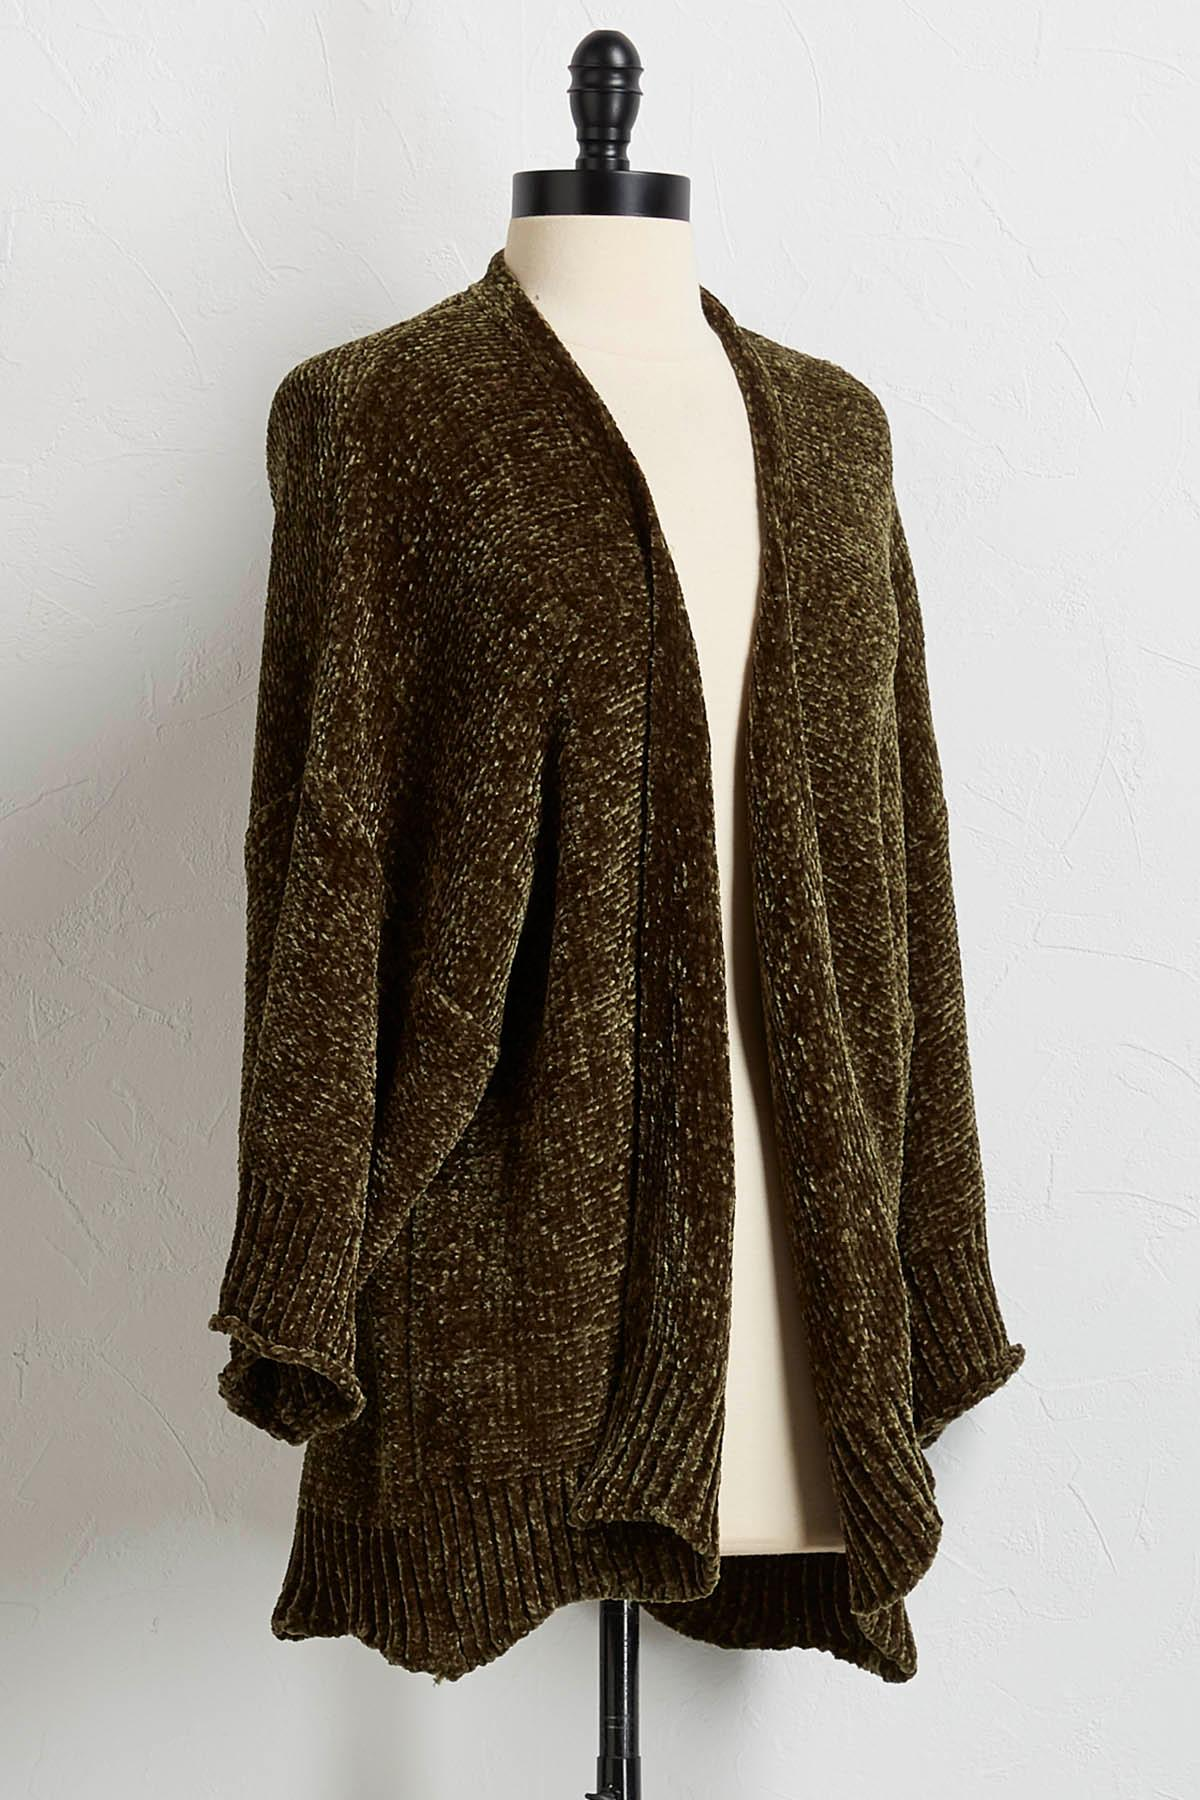 You searched for: chenille cardigan! Etsy is the home to thousands of handmade, vintage, and one-of-a-kind products and gifts related to your search. No matter what you're looking for or where you are in the world, our global marketplace of sellers can help you find unique and affordable options. Let's get started!